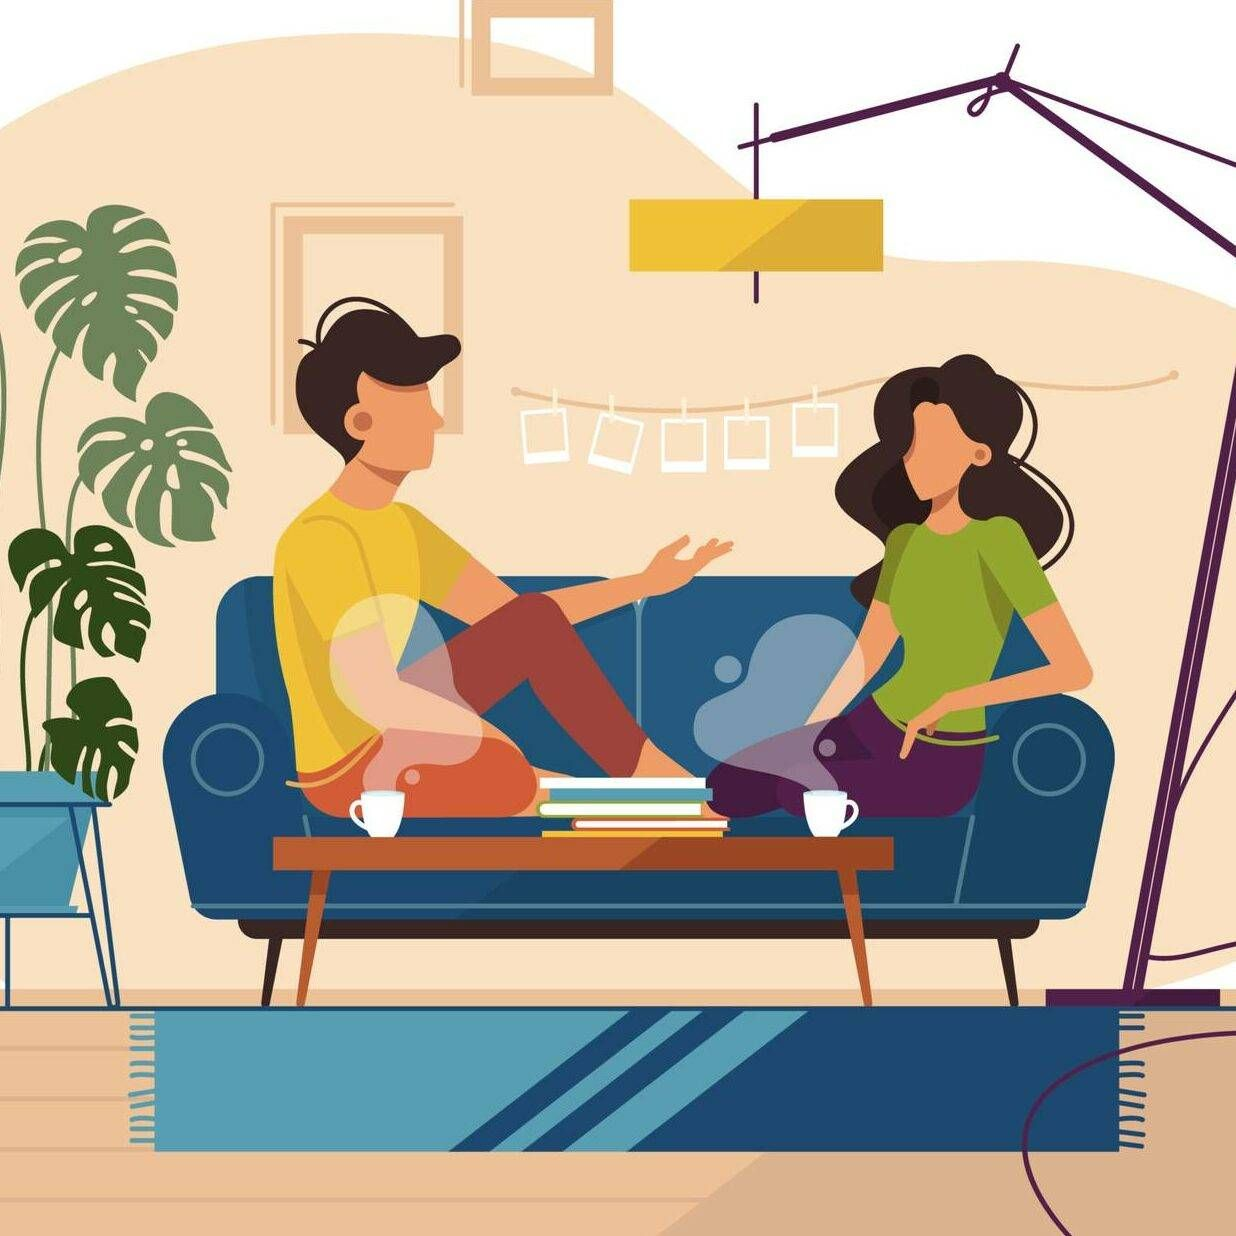 Illustration of couple sitting on couch in apartment and talking.